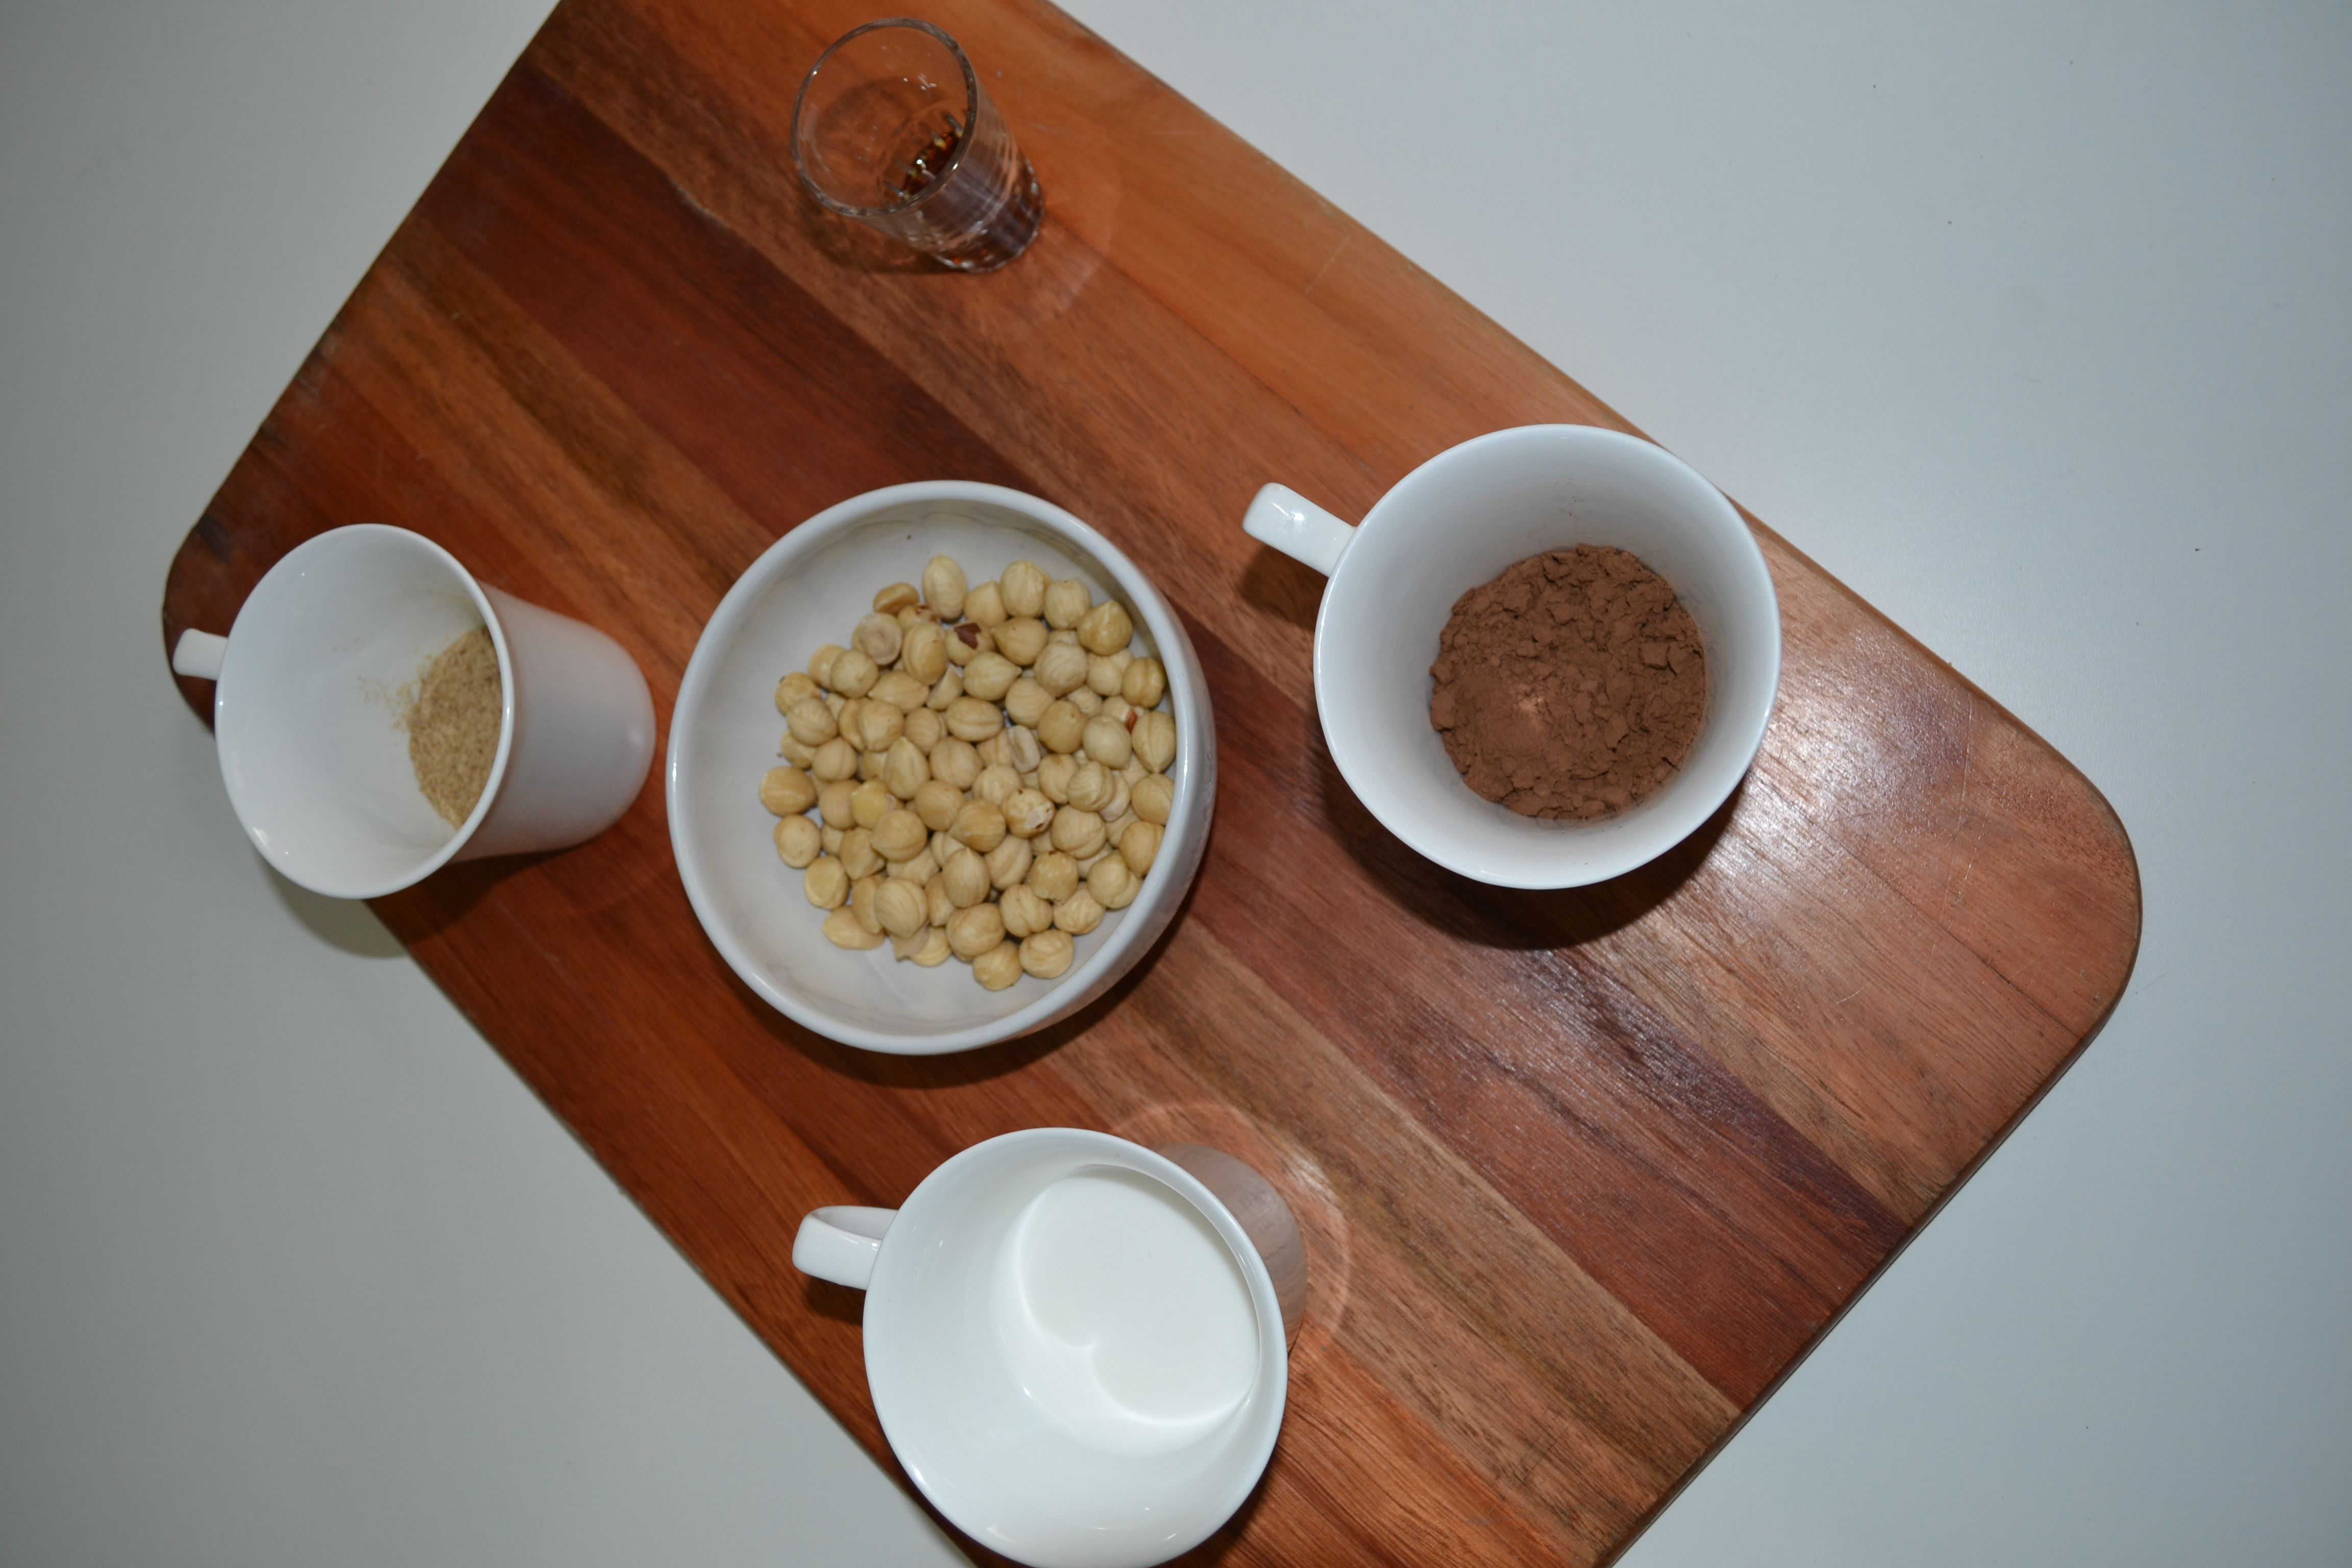 Ingredients for the hazelnuts sweet